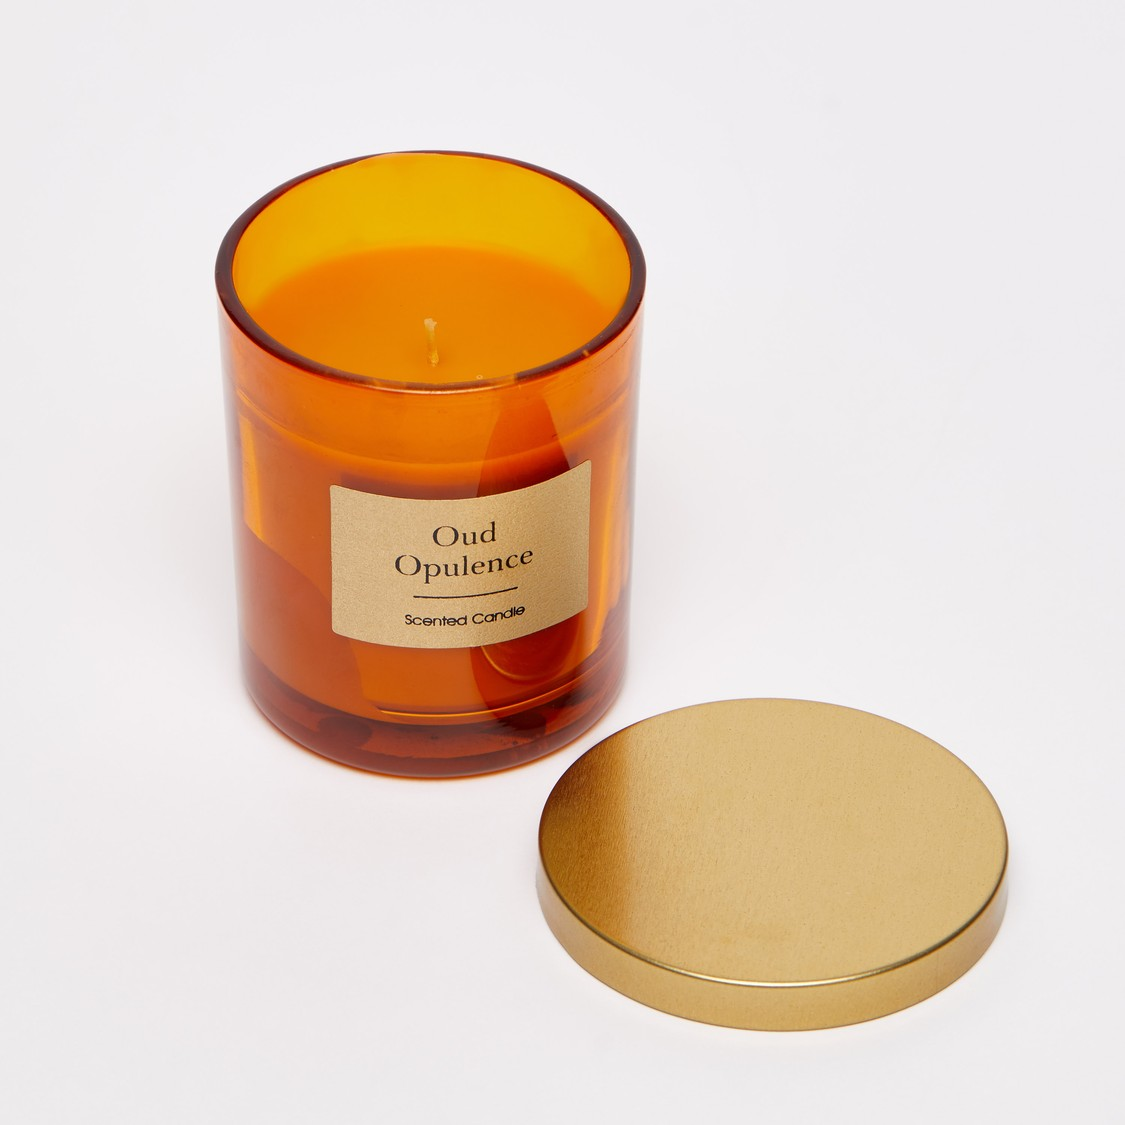 Oud Opulence Scented Jar Candle - 8x7 cms